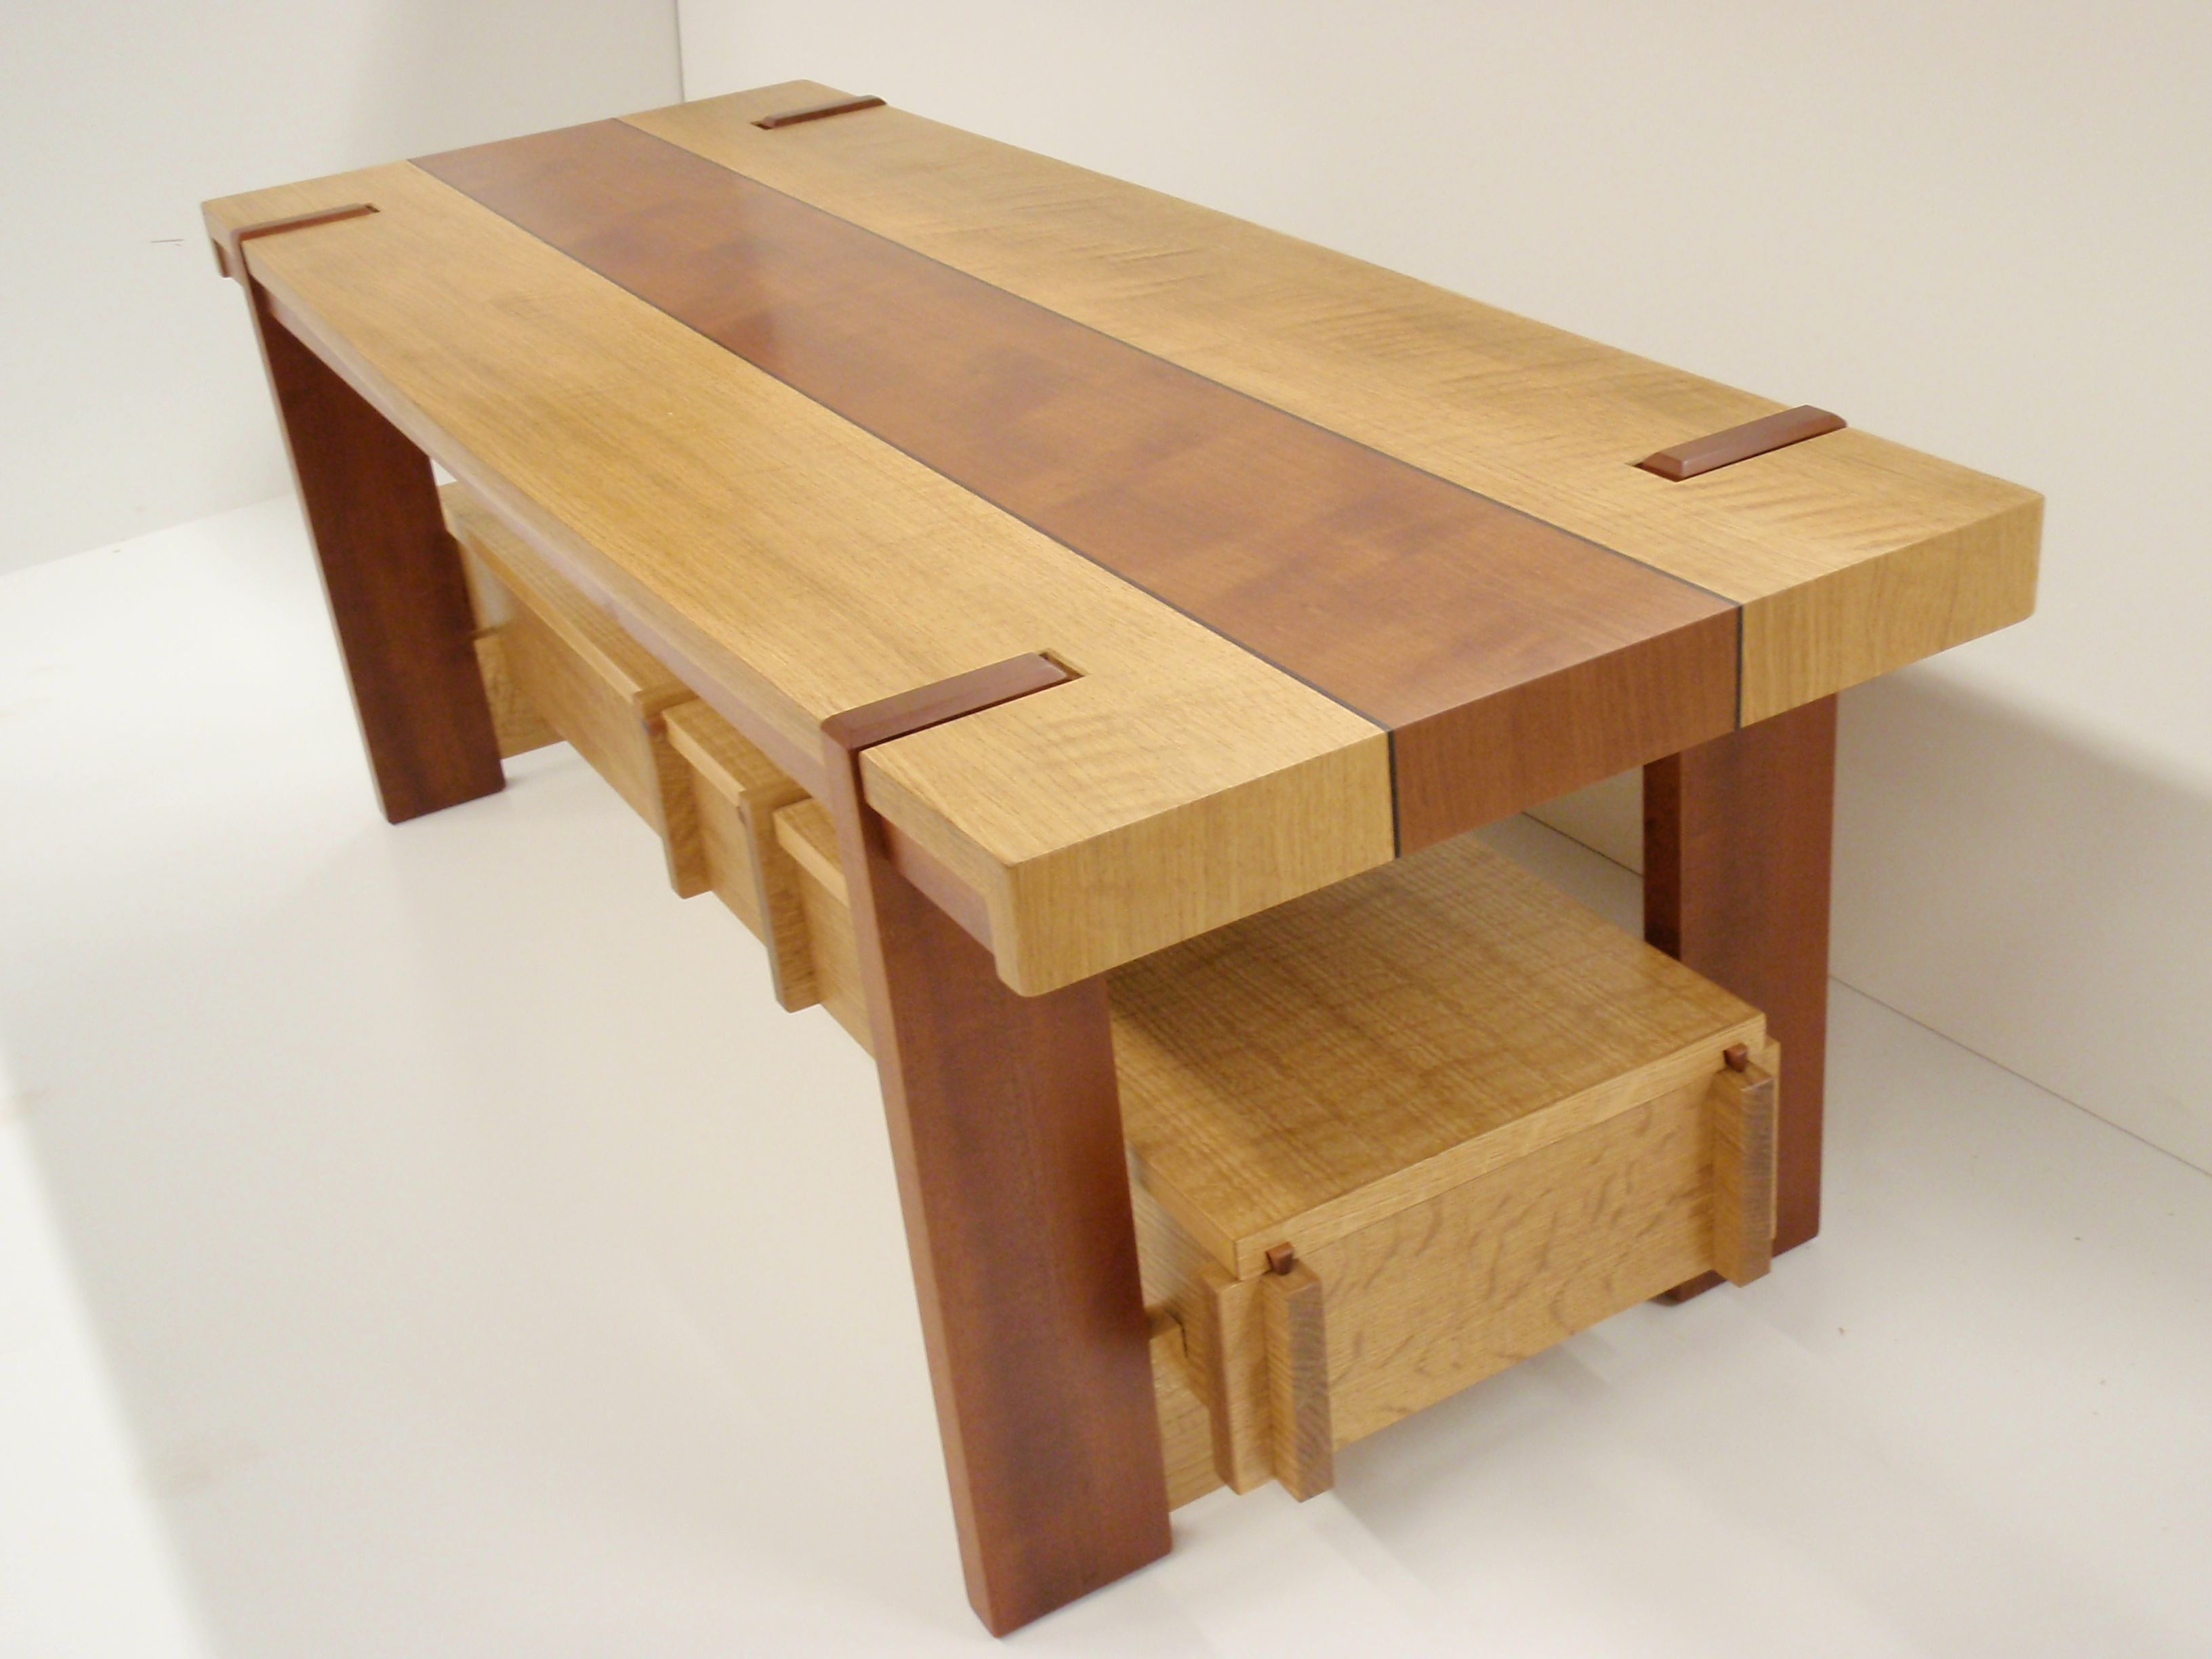 cofee table in white oak and unknown secies with ebony inlays lucas furniture design wash dc - Furniture Design Online